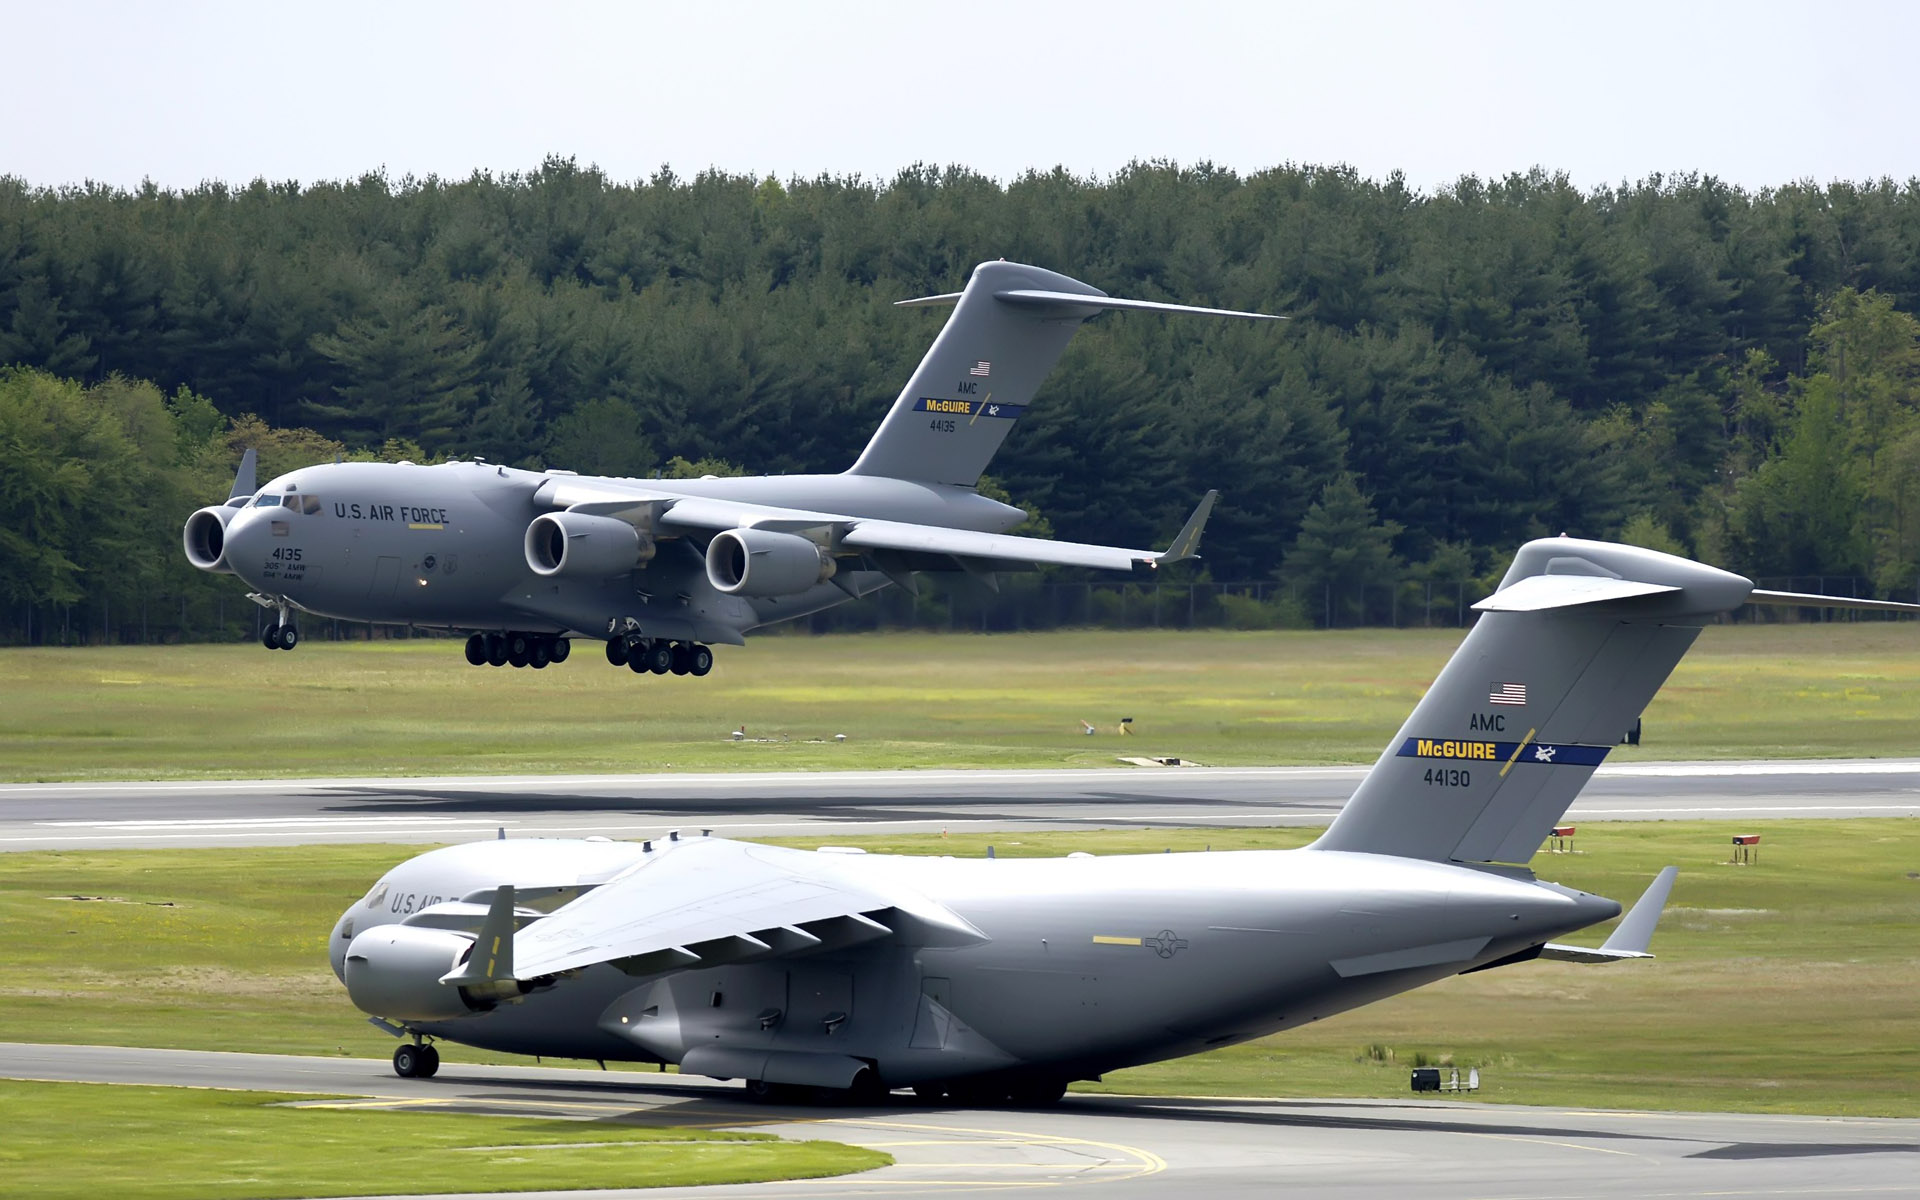 C 17 Globemaster III at McGuire Air Force Base 260.2 Kb